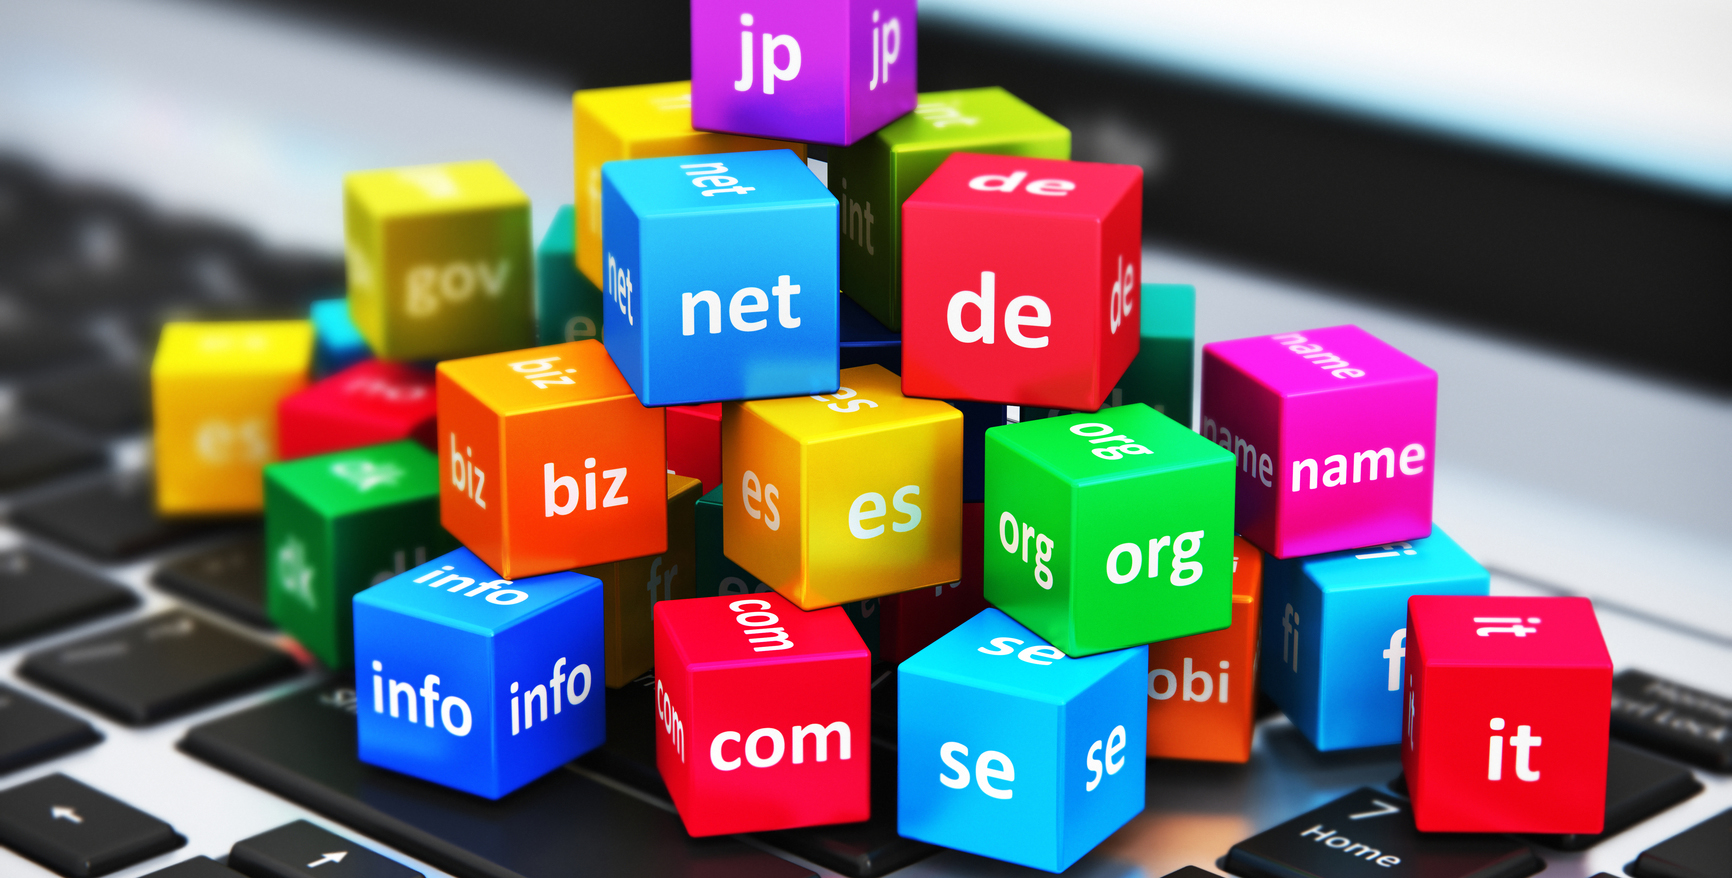 14 Mistakes You May Be Making When Buying Domain Names